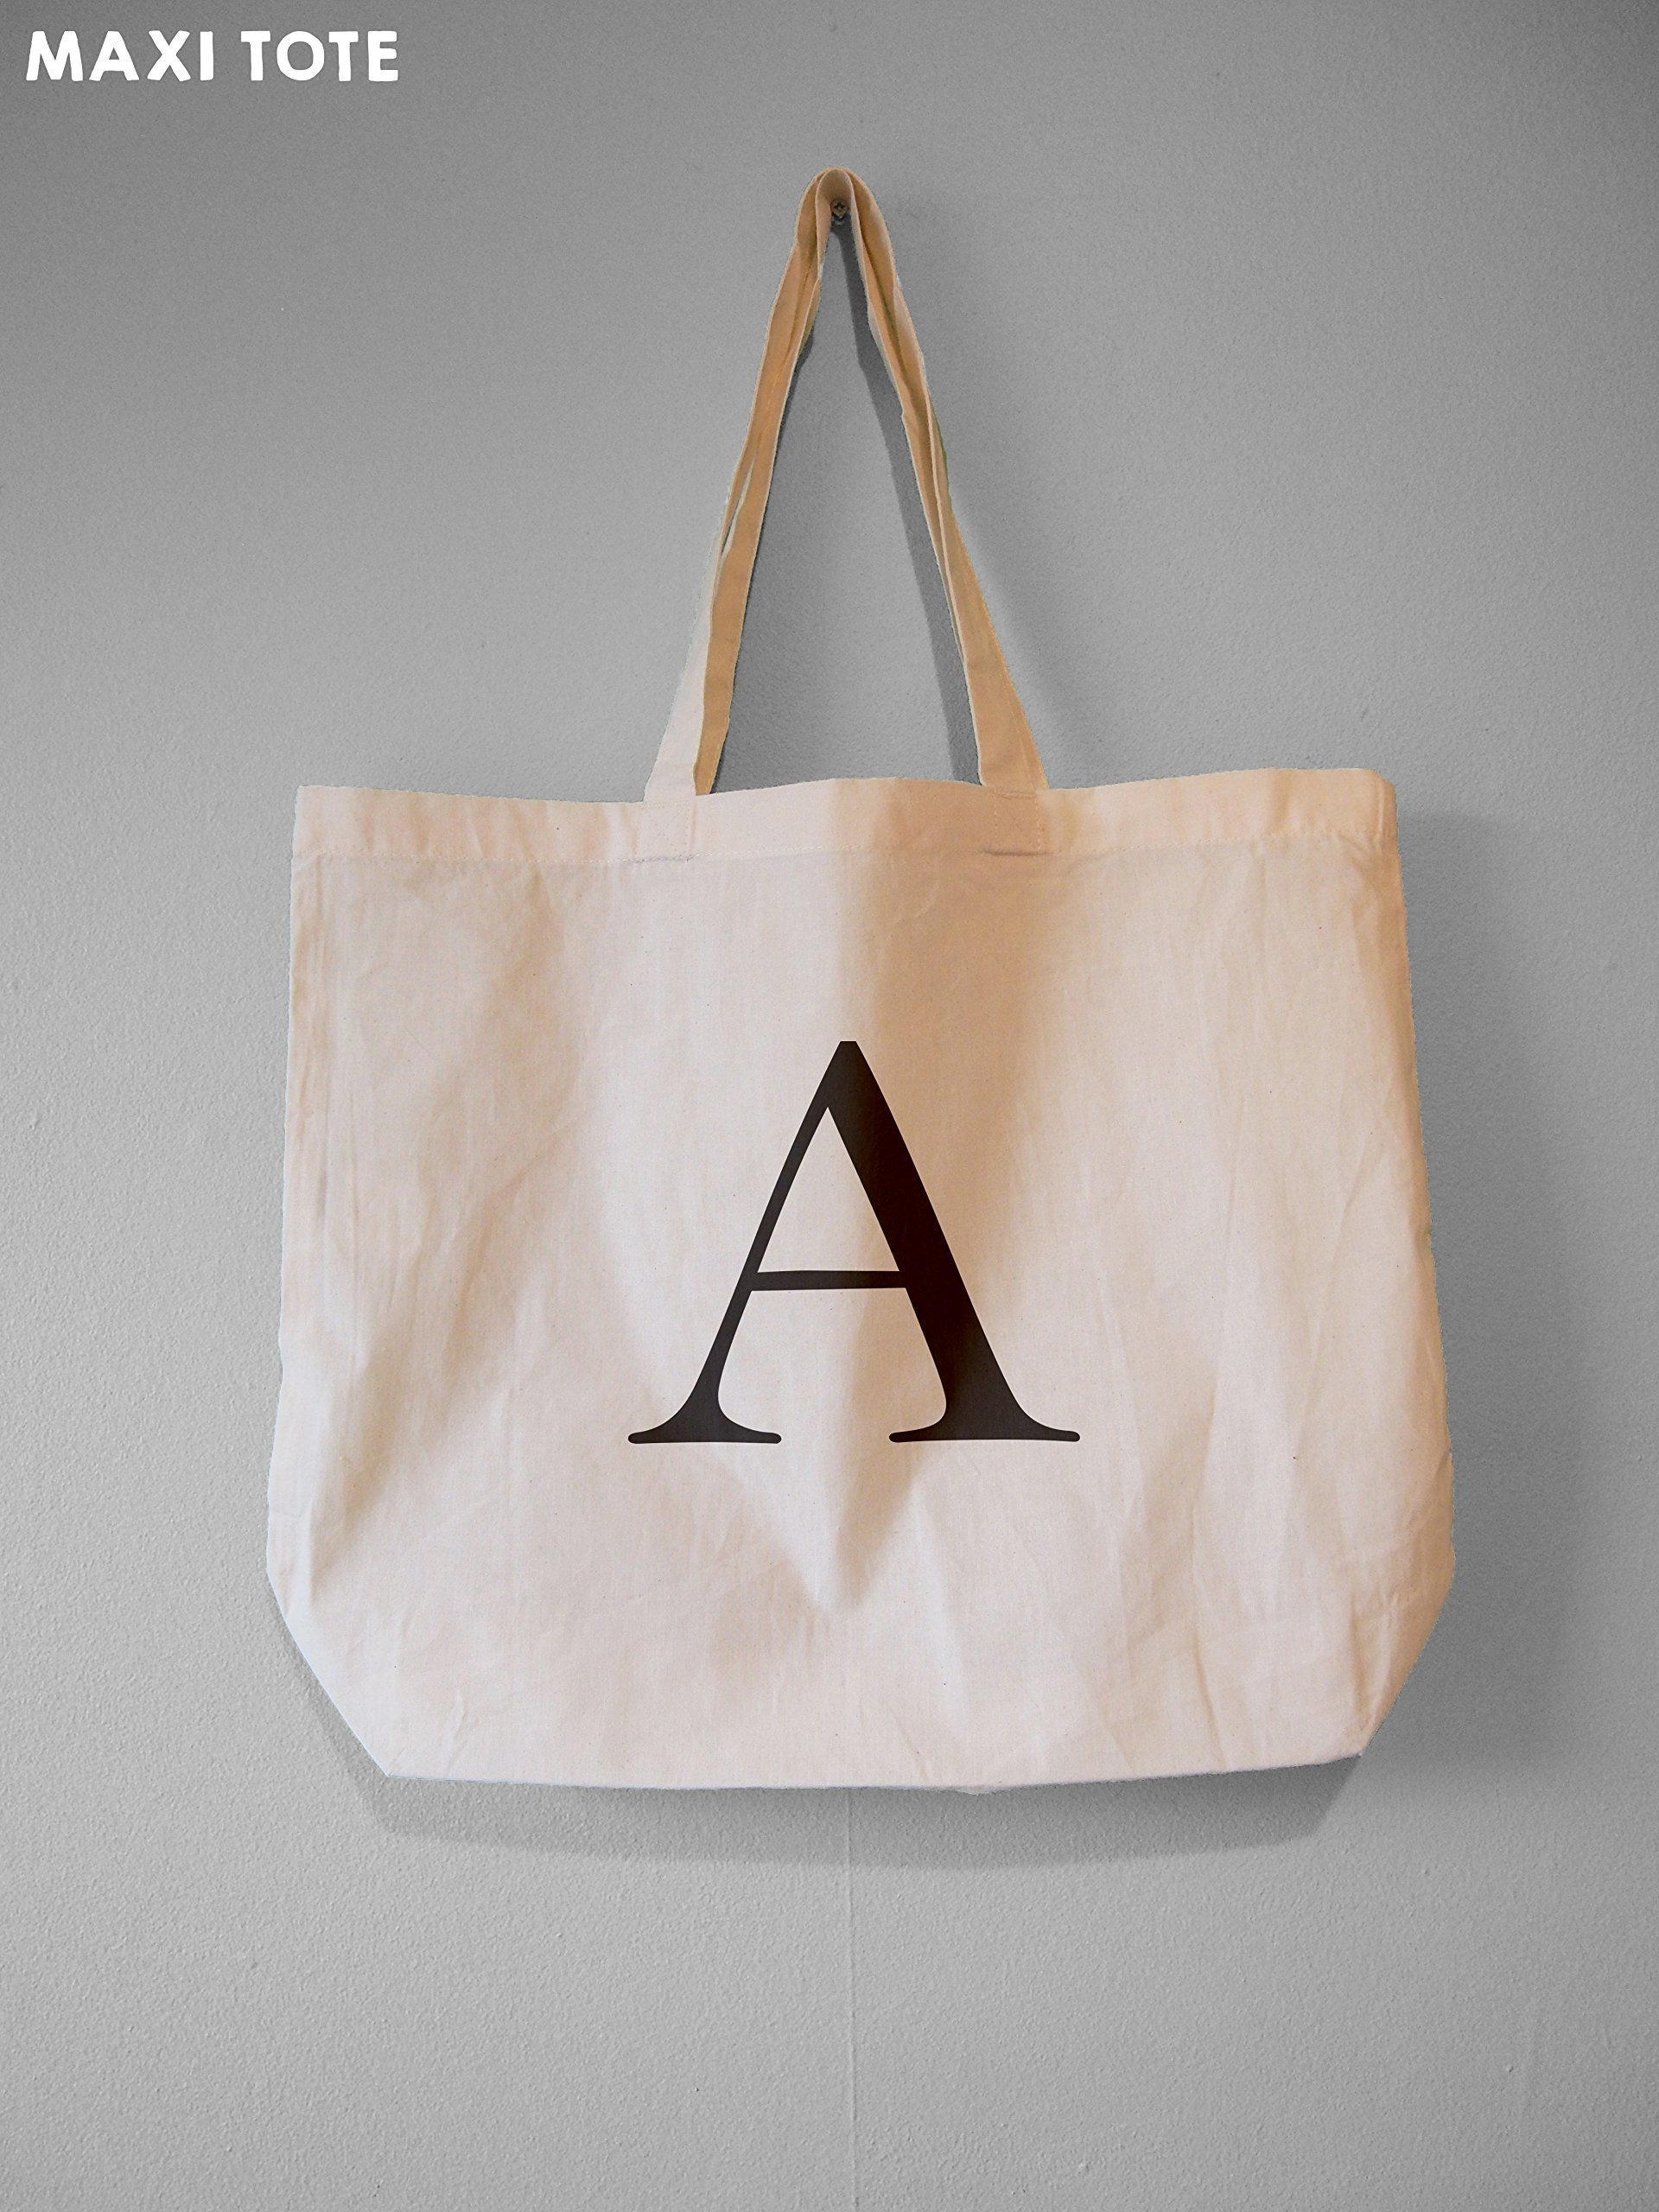 Monogram Tote, Alphabet Bag, Choose Your Letter - Natural Cotton Tote Bag - handmade-bags